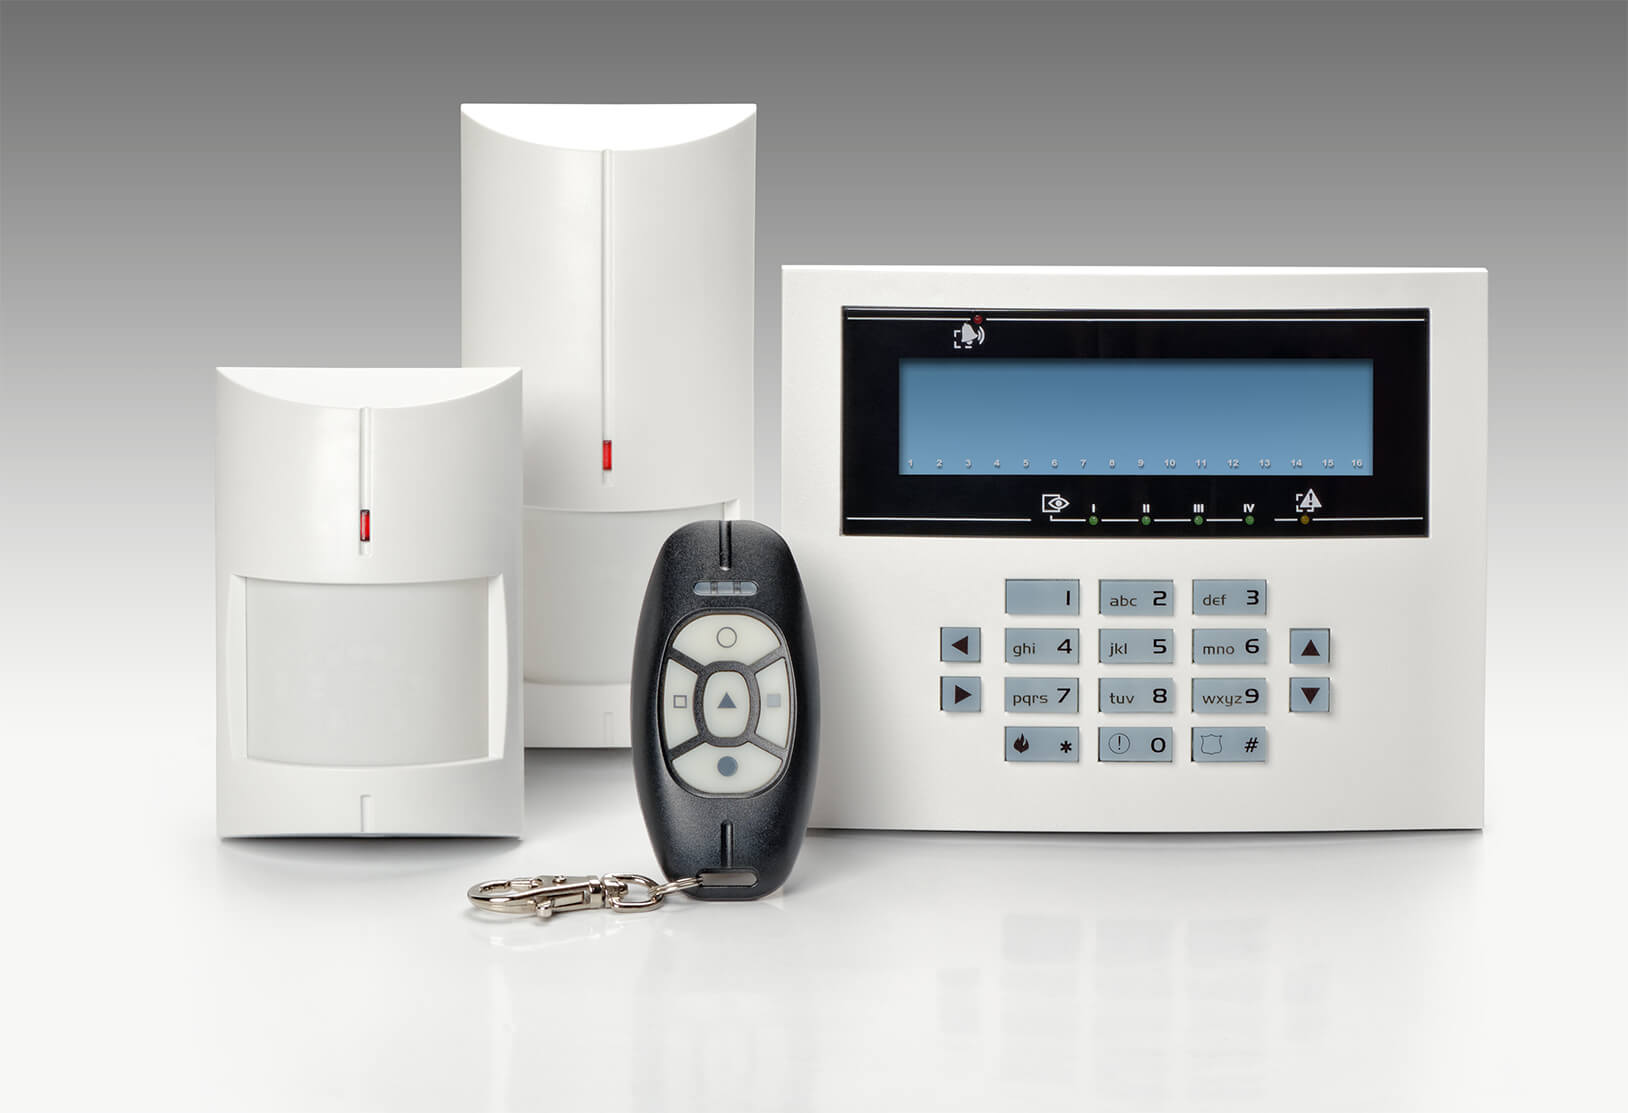 Burglar Alarms Repair in Monument EC3 - Local Monument EC3 alarm engineers.Call 02078872244 - See cost/price for burglar alarm repair and book your alarm engineer. No Hidden charges,No Contracts, Book as you need.Engineers on demand.All alarm makes repaired.Same day service ability.